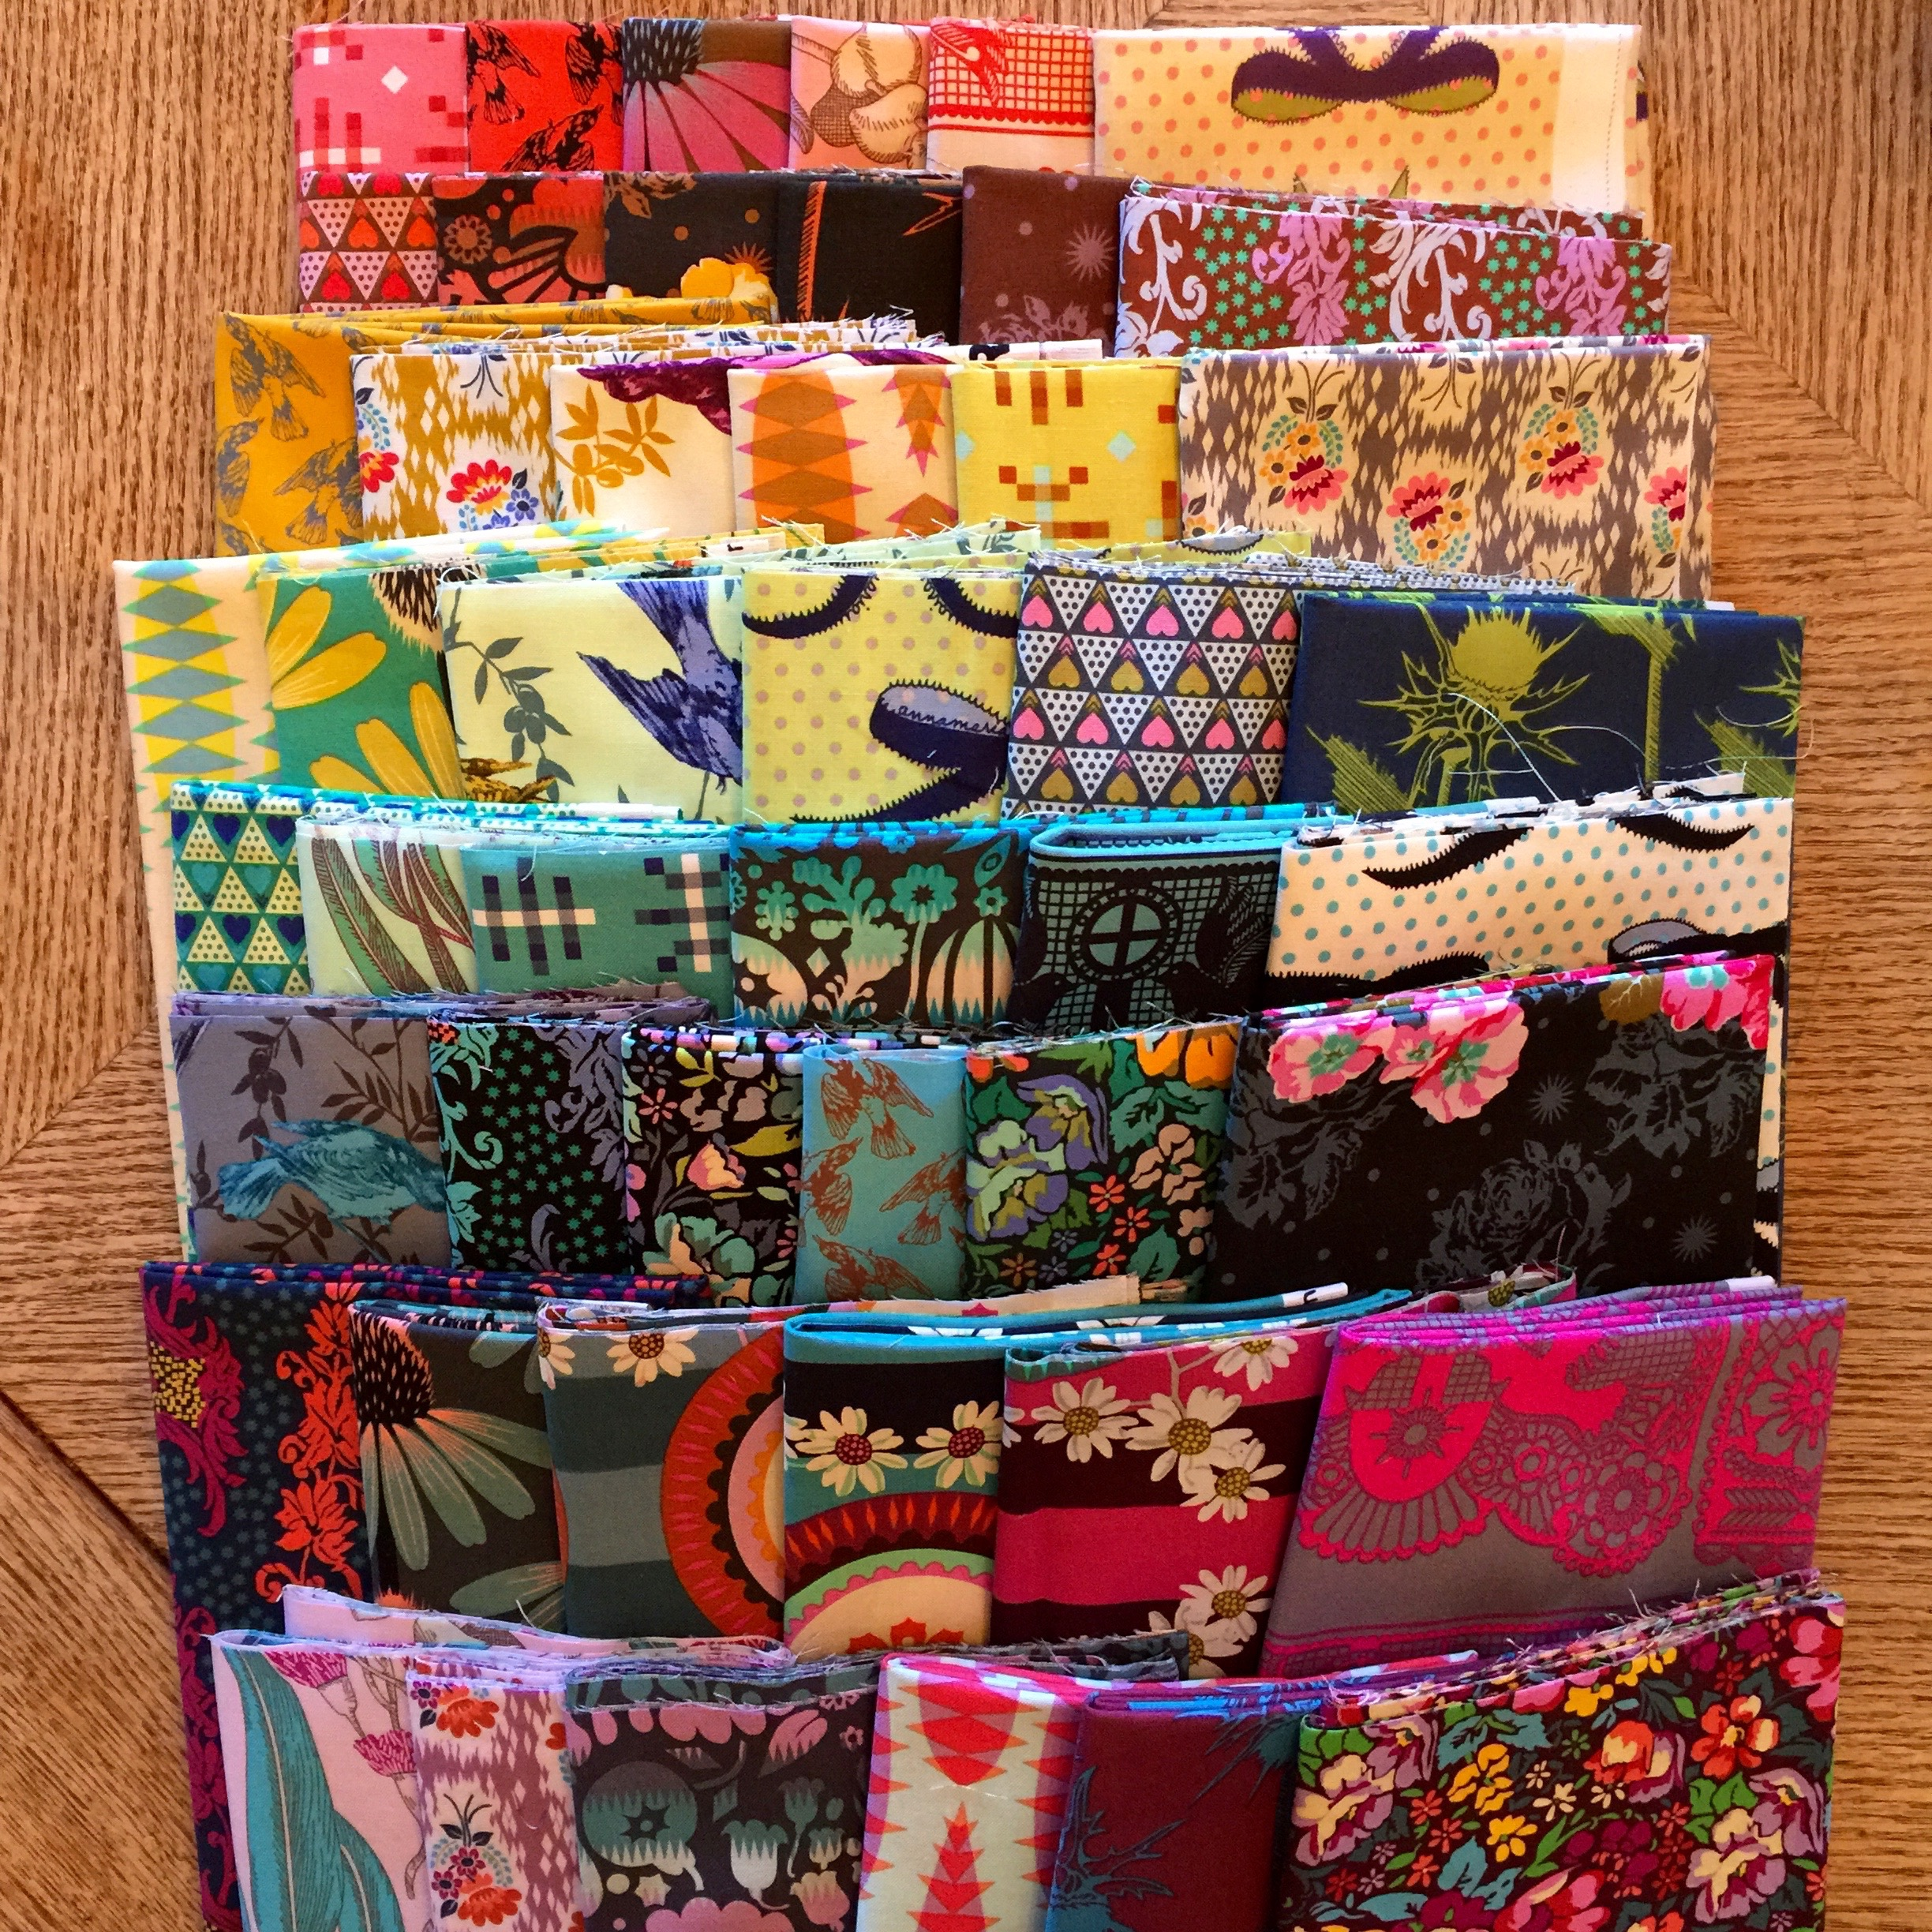 What do you do when you don't love the fabric you picked for your quilt?